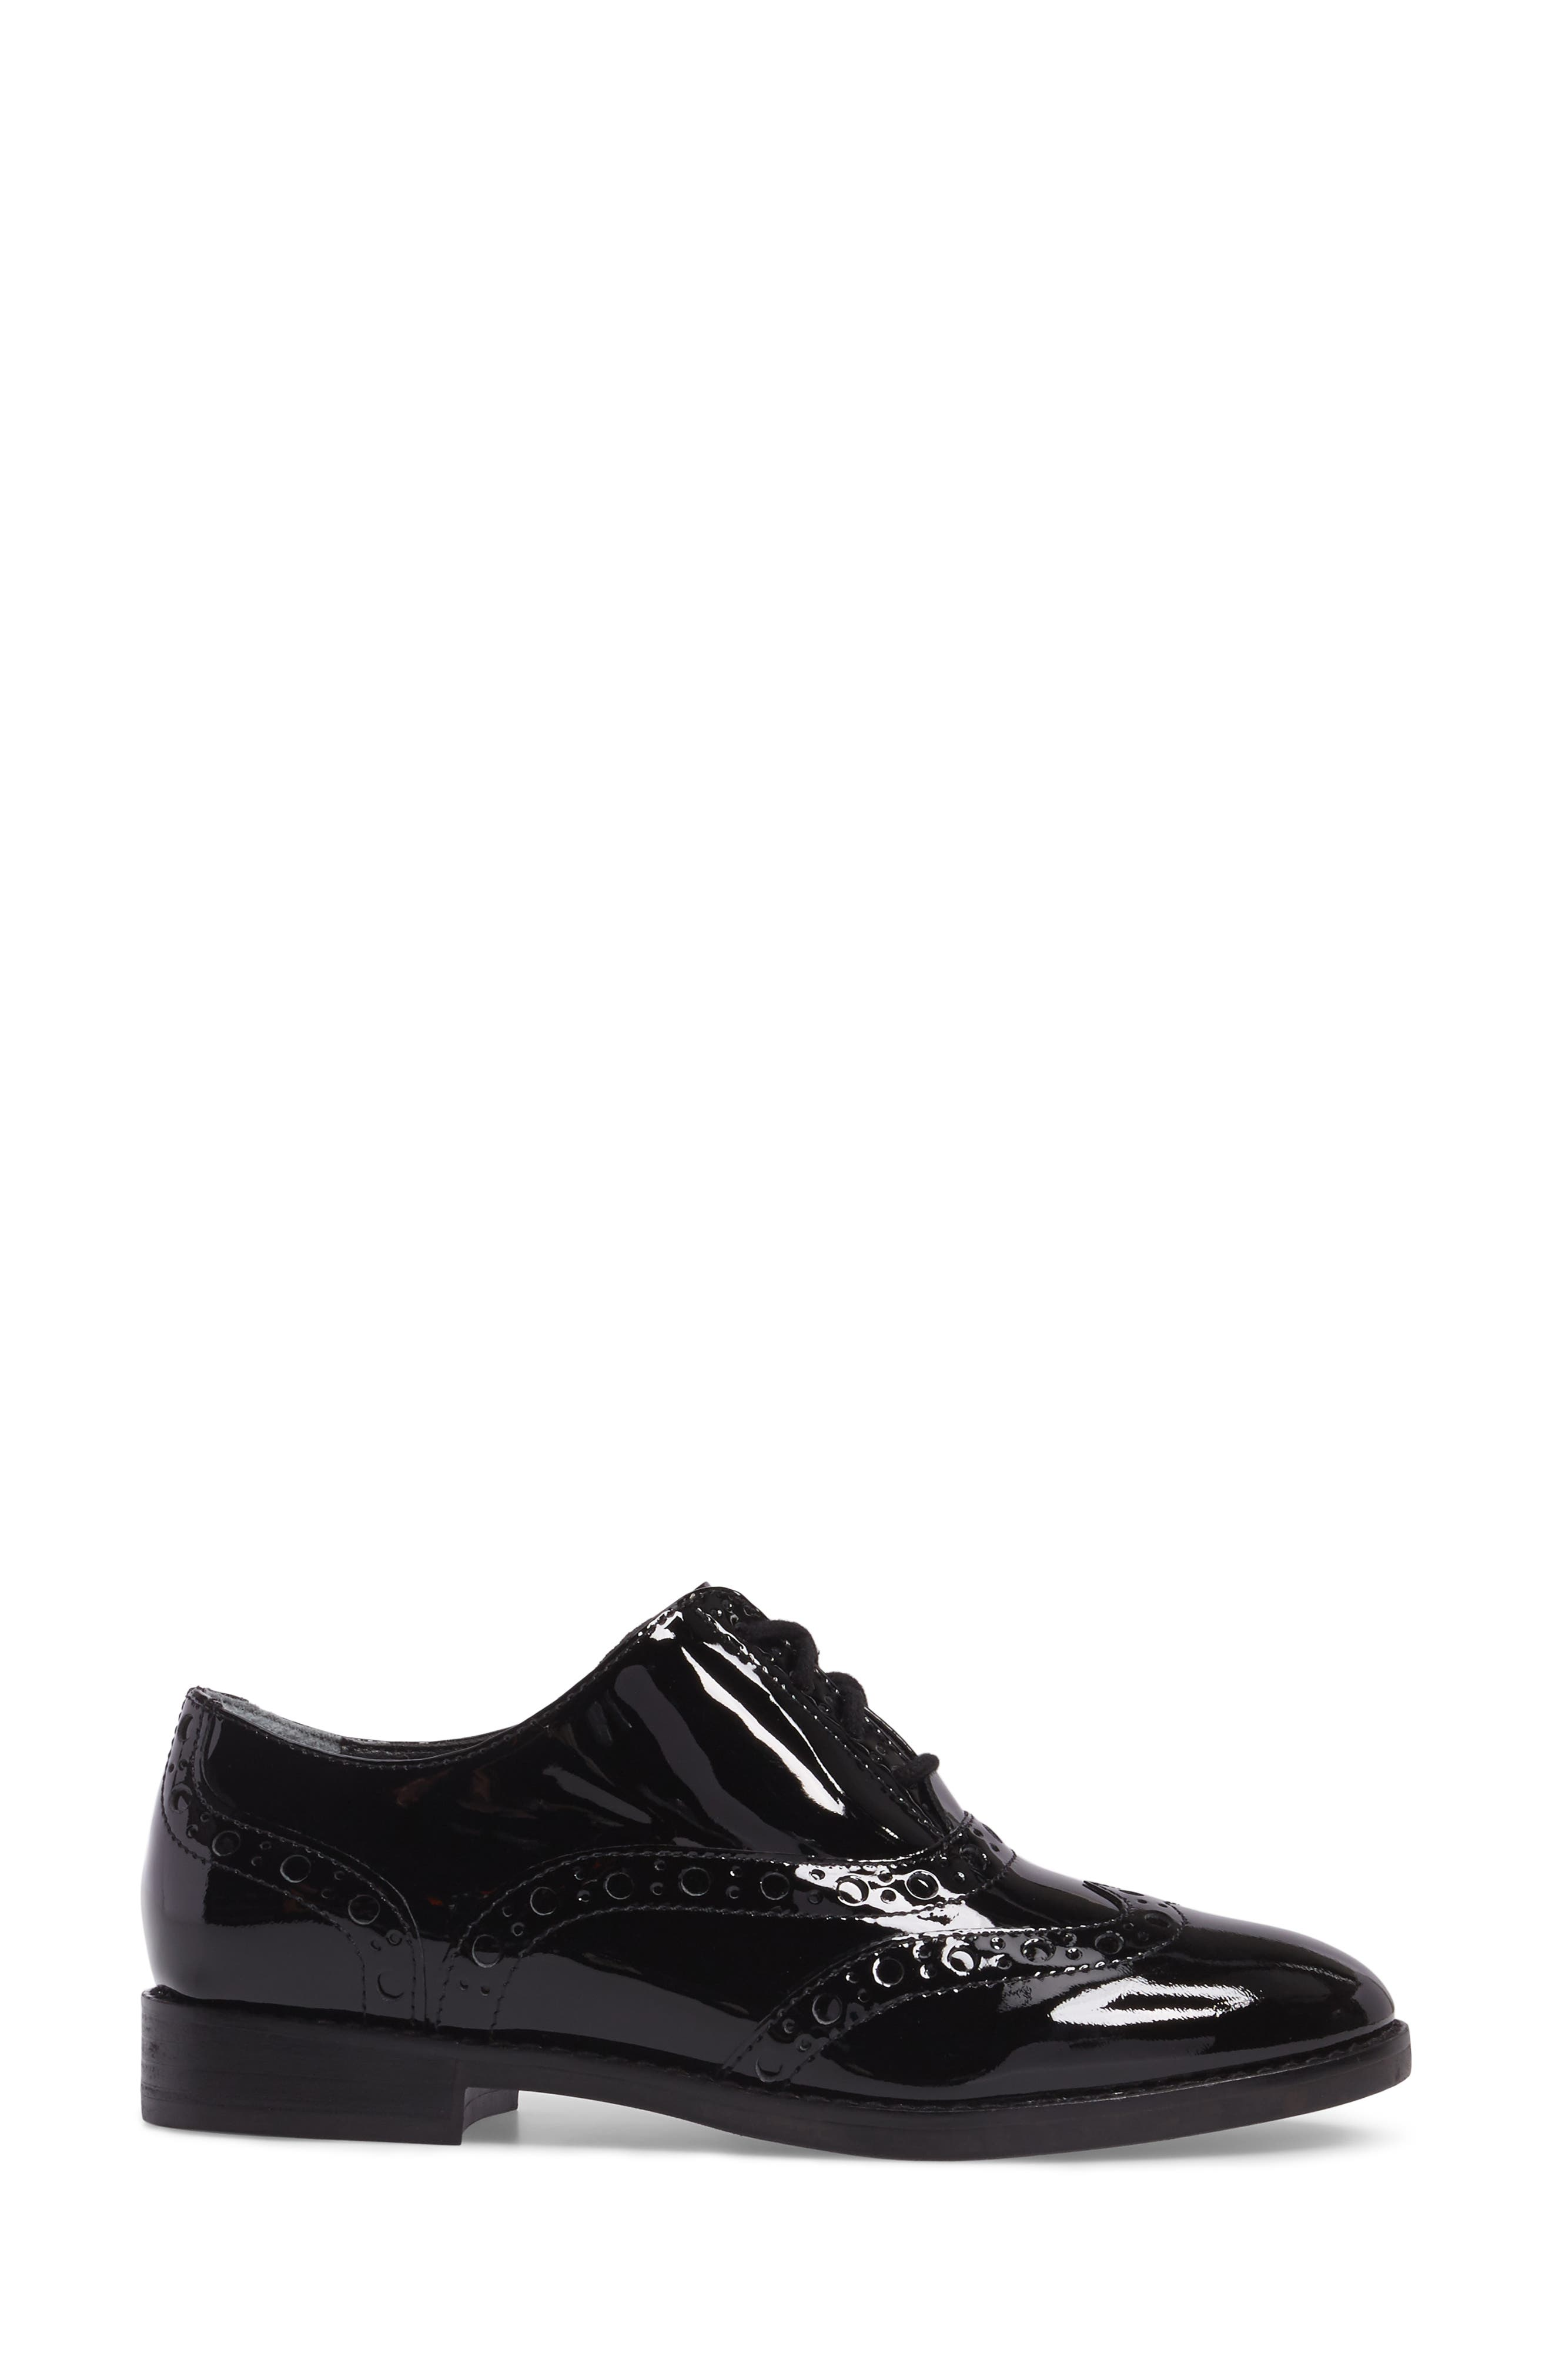 Hadley Wingtip,                             Alternate thumbnail 3, color,                             BLACK PATENT LEATHER